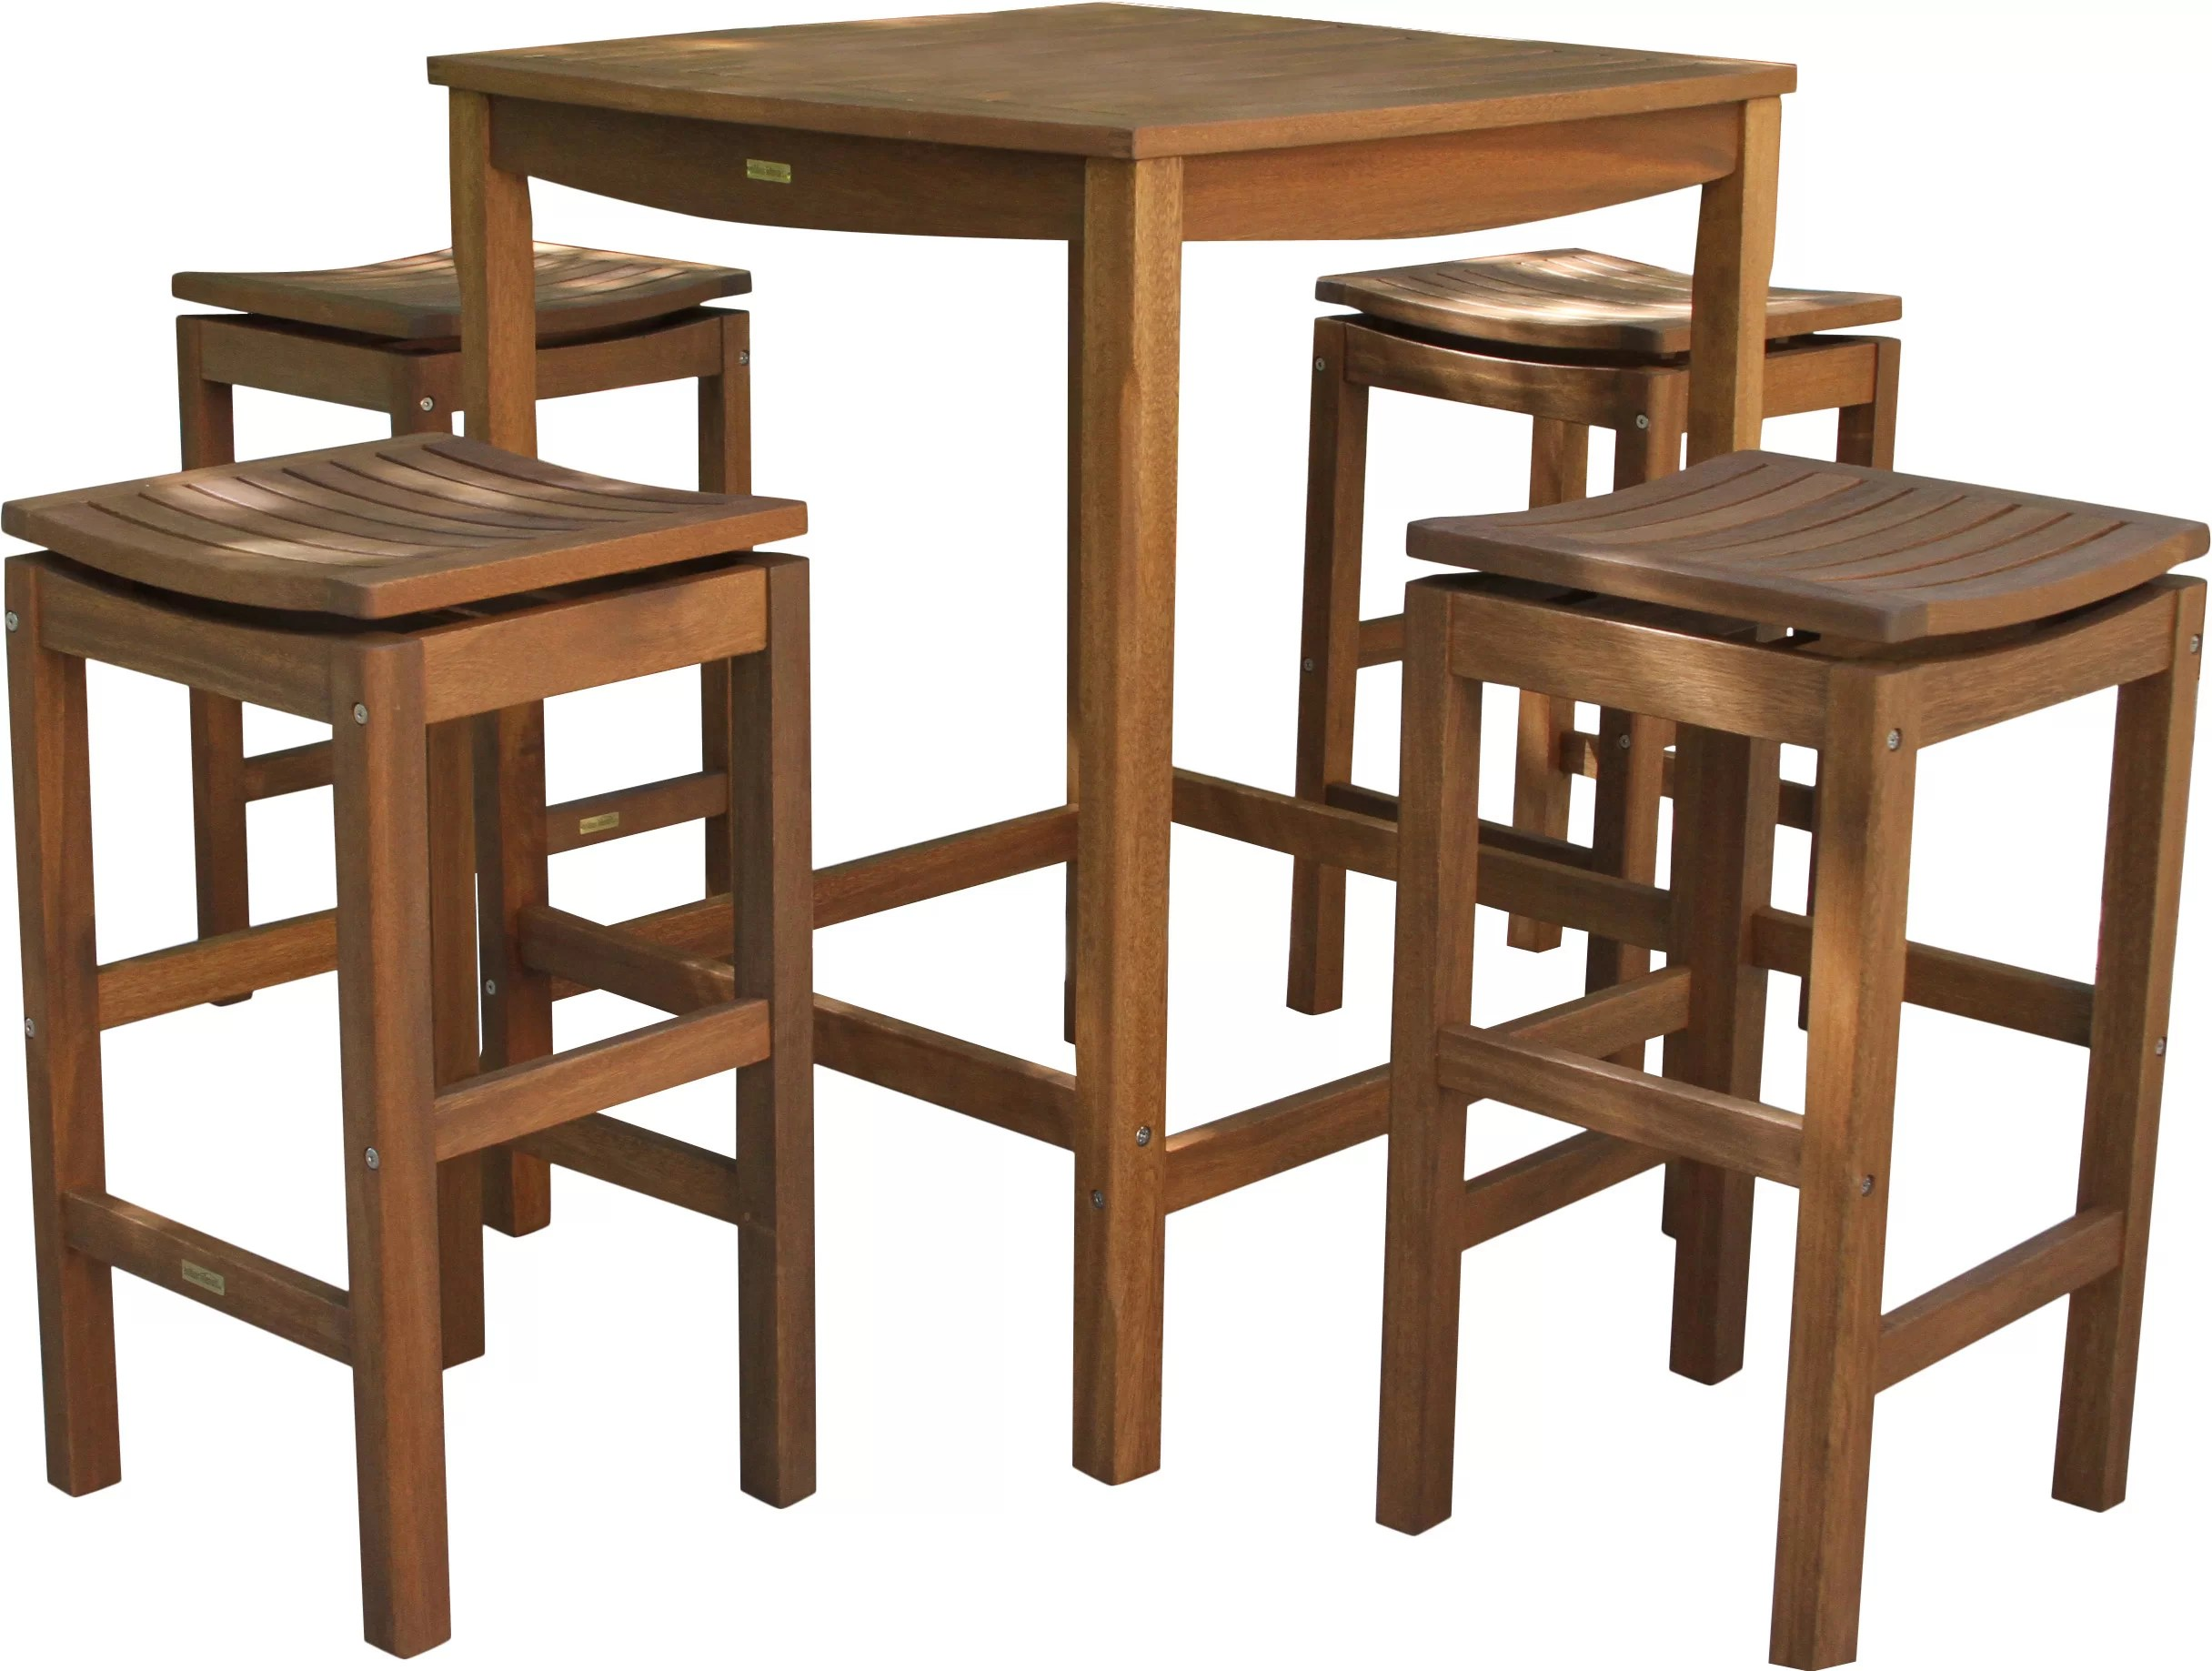 Bar Height Table And Chairs Mallie 5 Piece Bar Height Dining Set